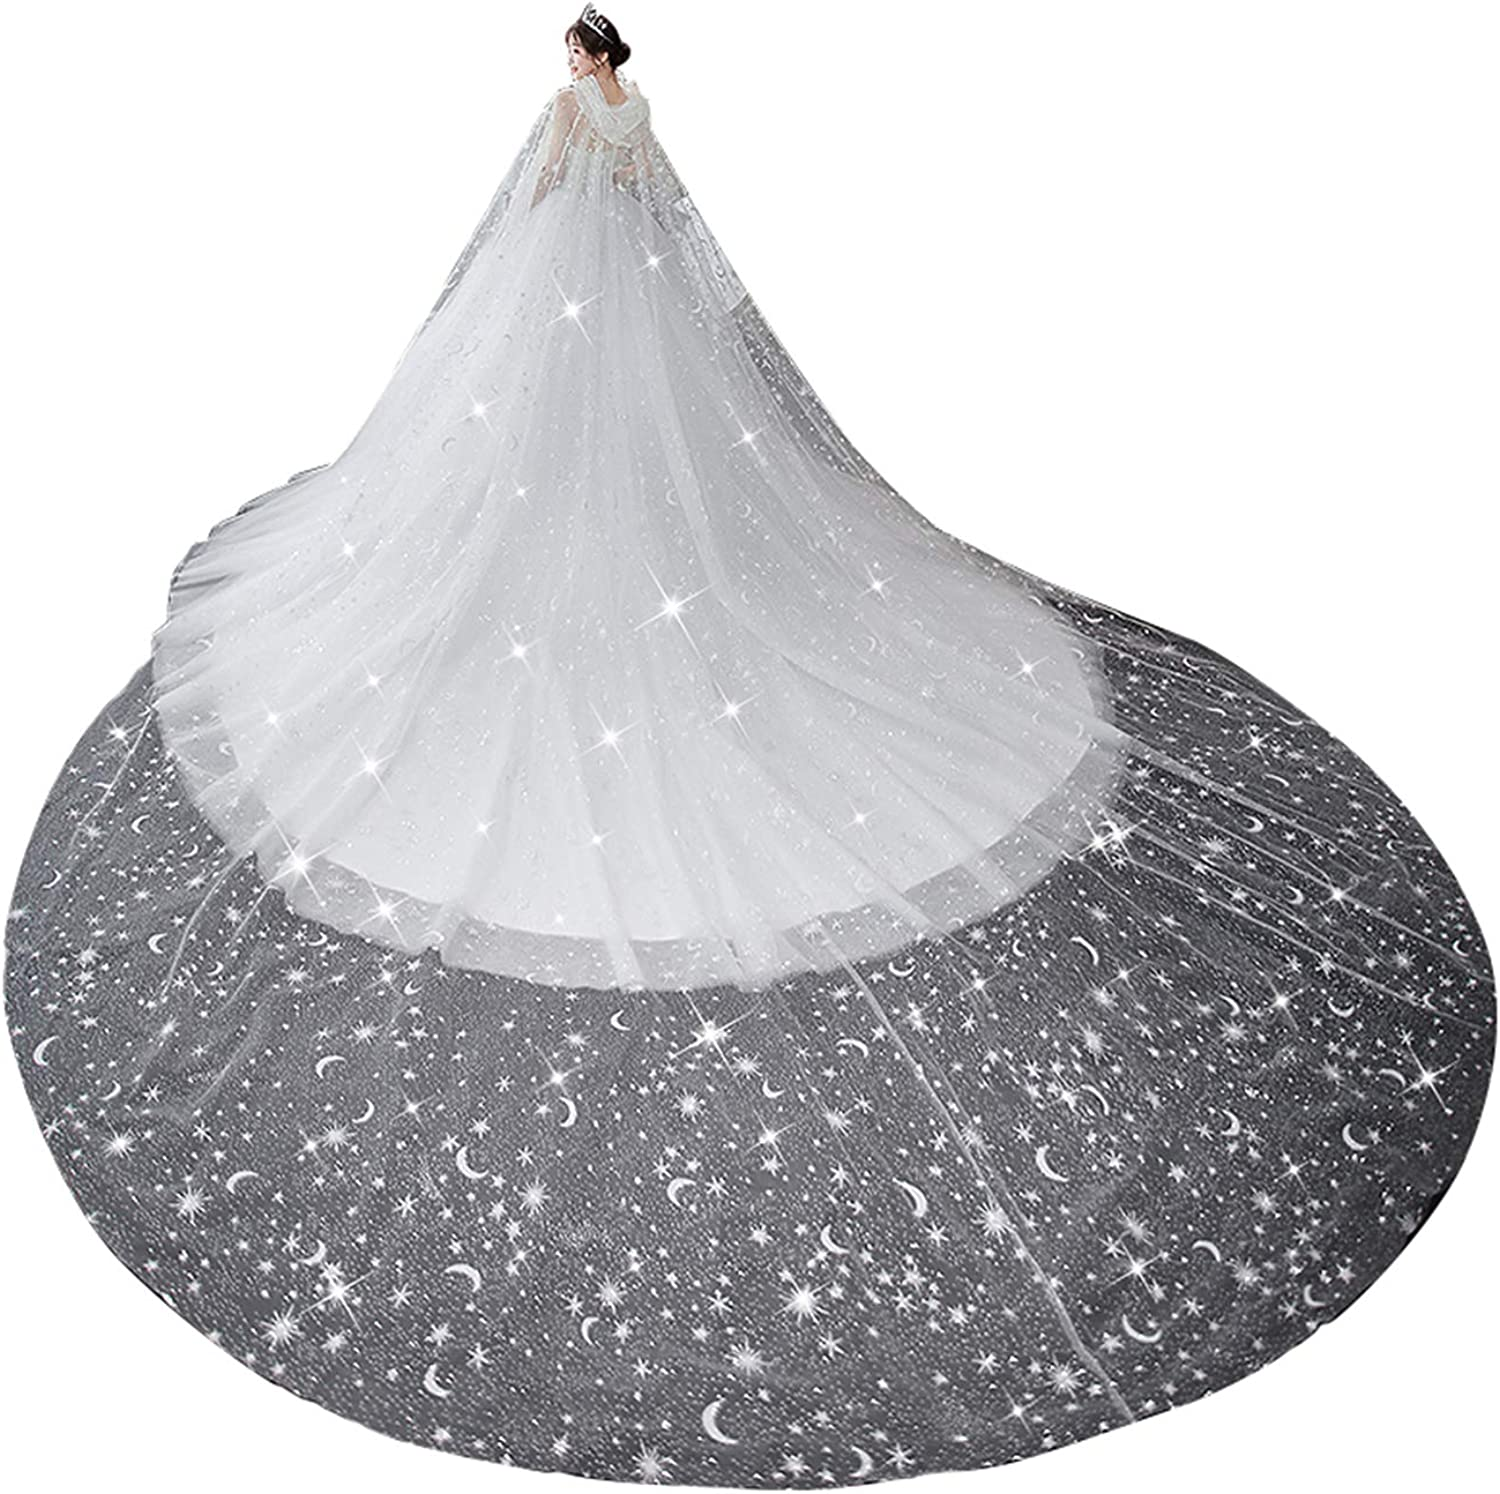 Wedding Capes Veils for Brides 70% OFF Outlet Bridal Vei Shinny Cathedral Ivory price